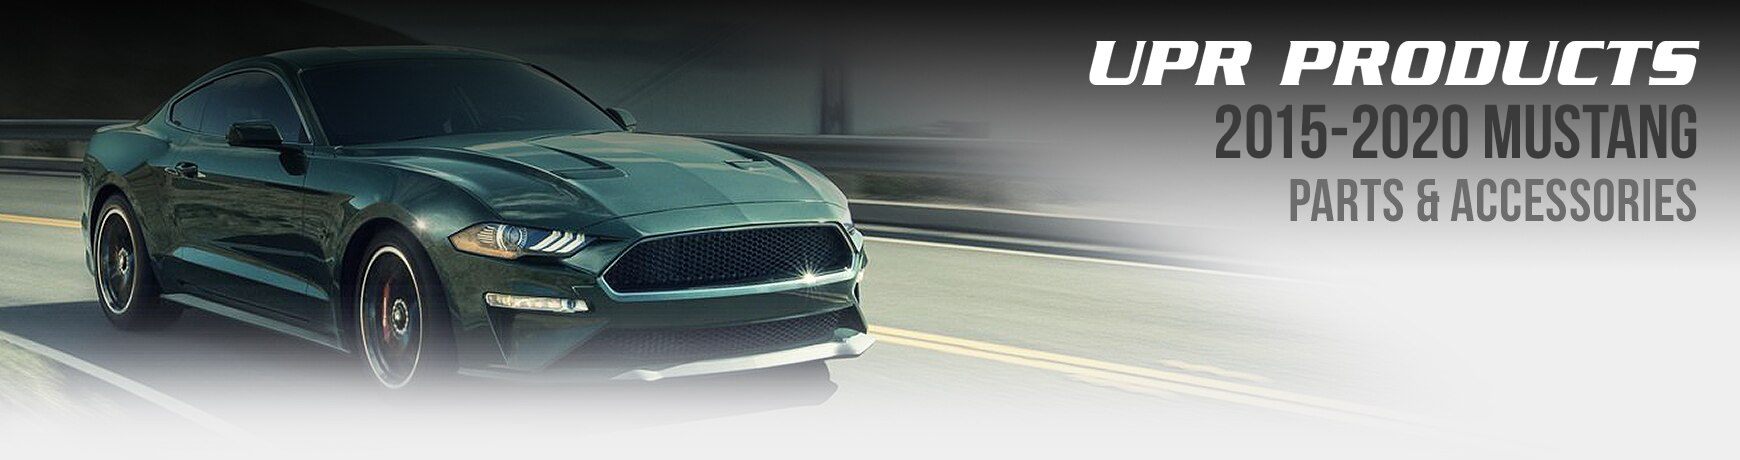 UPR 2015-2019 Mustang Parts Accessories